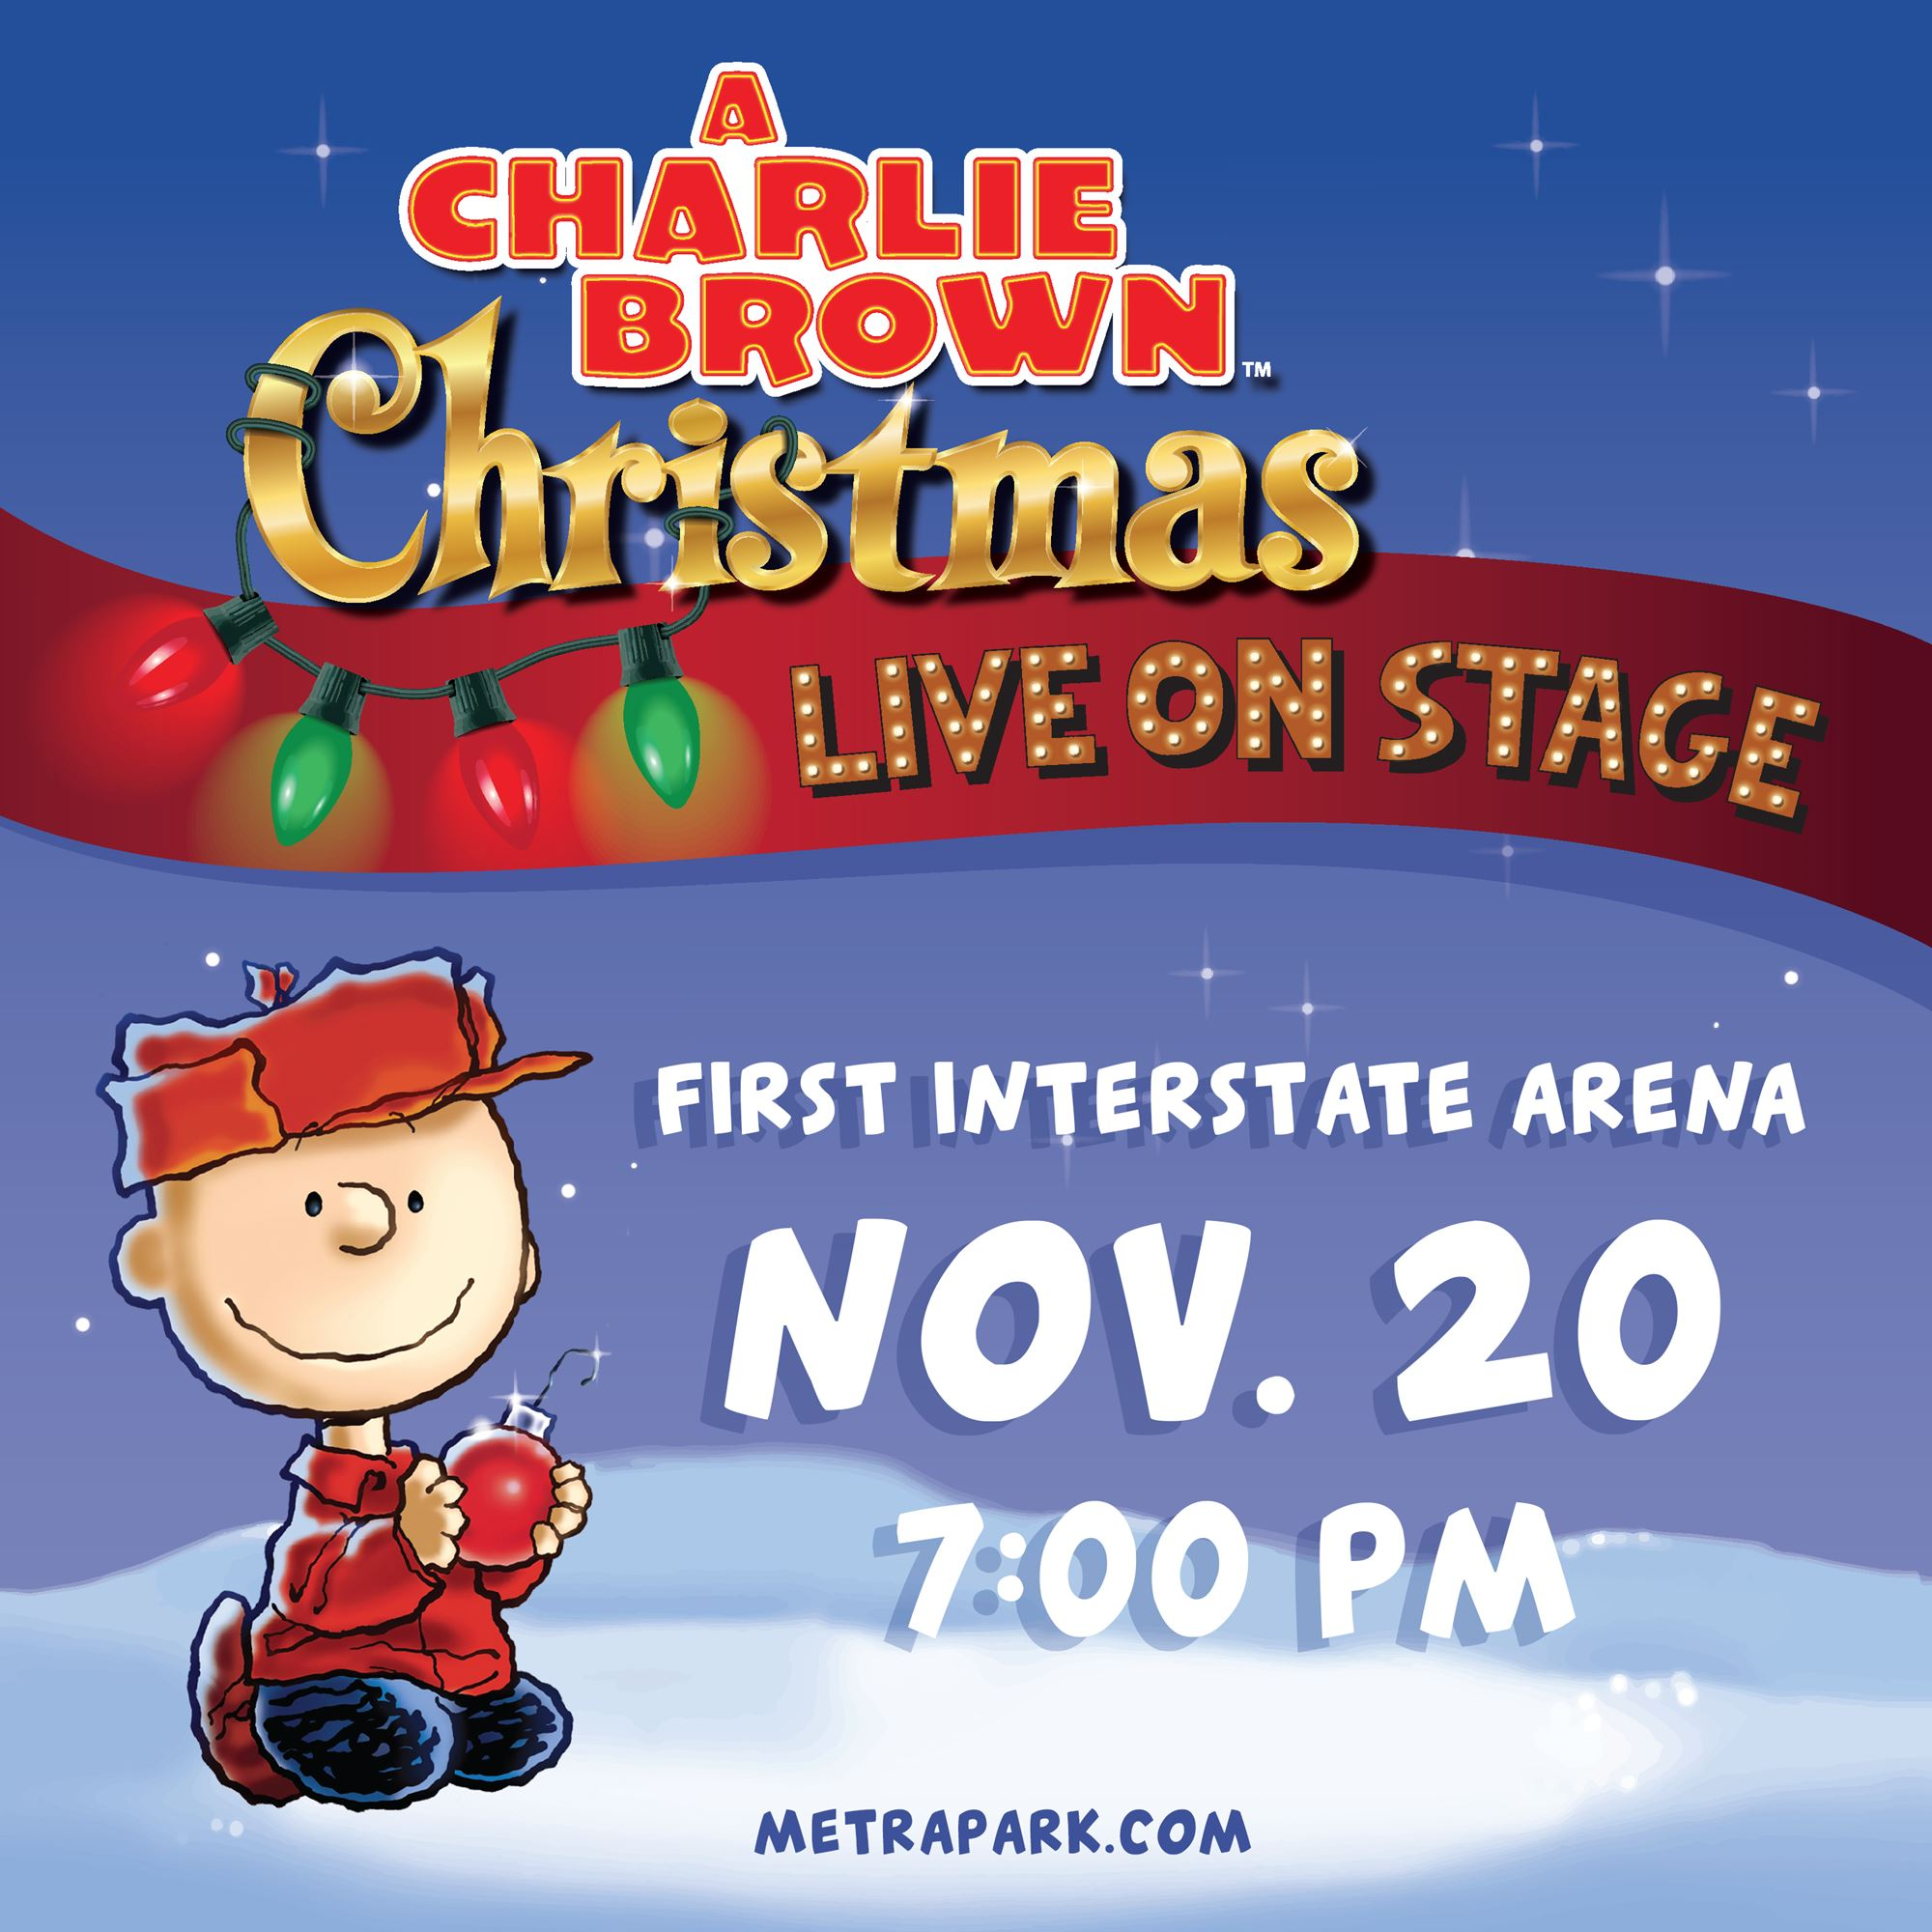 A Charlie Brown Christmas Book.A Charlie Brown Christmas Live On Stage